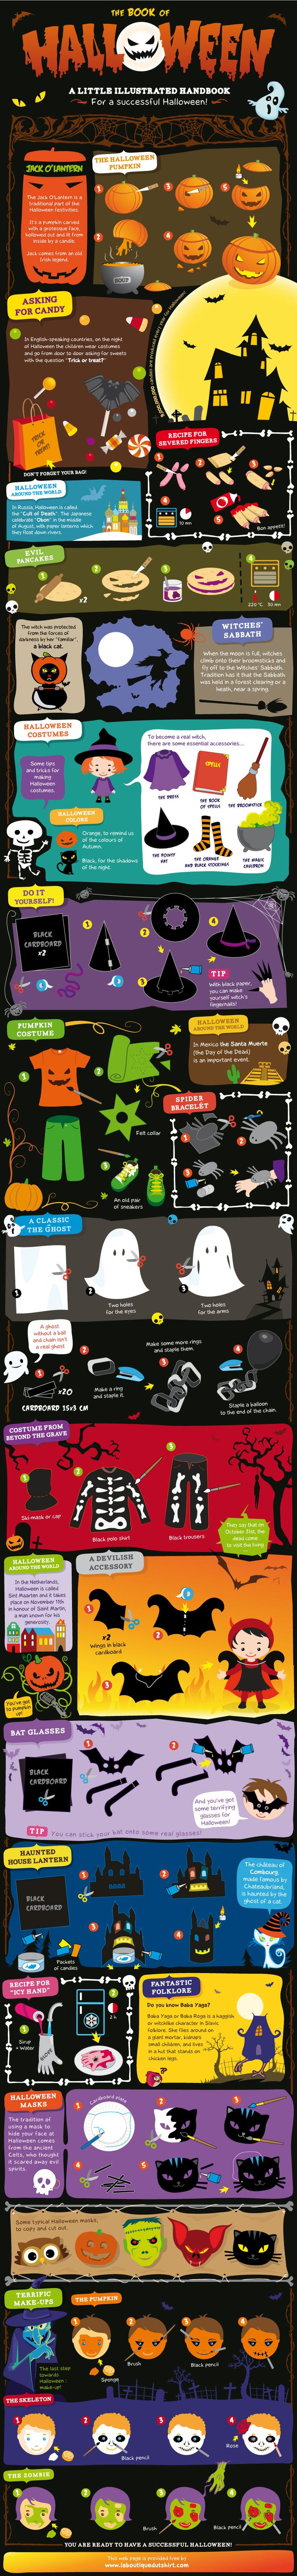 diy-halloween-ideas-that-are-easy-on-you-and-your-pocket